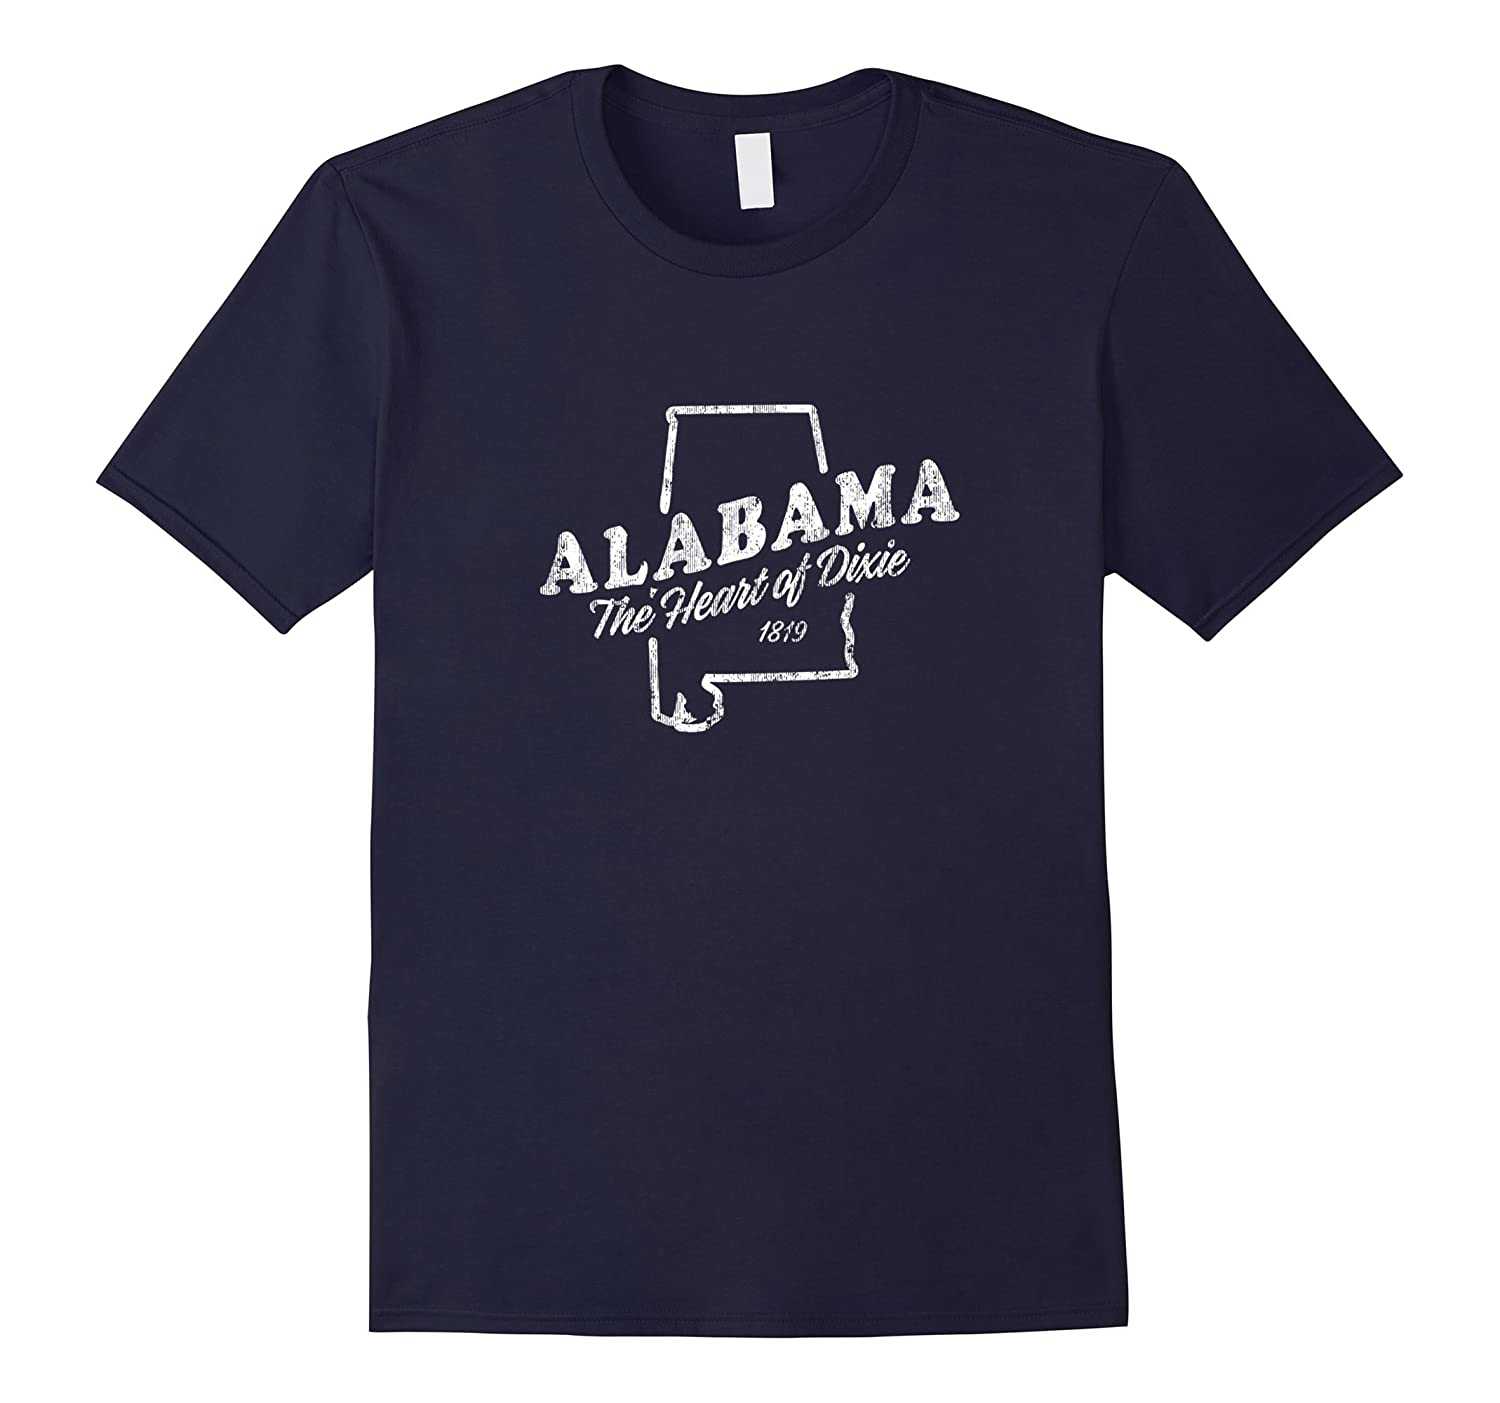 Alabama T-Shirt Vintage Graphic Tee Design Heart of Dixie-T-Shirt